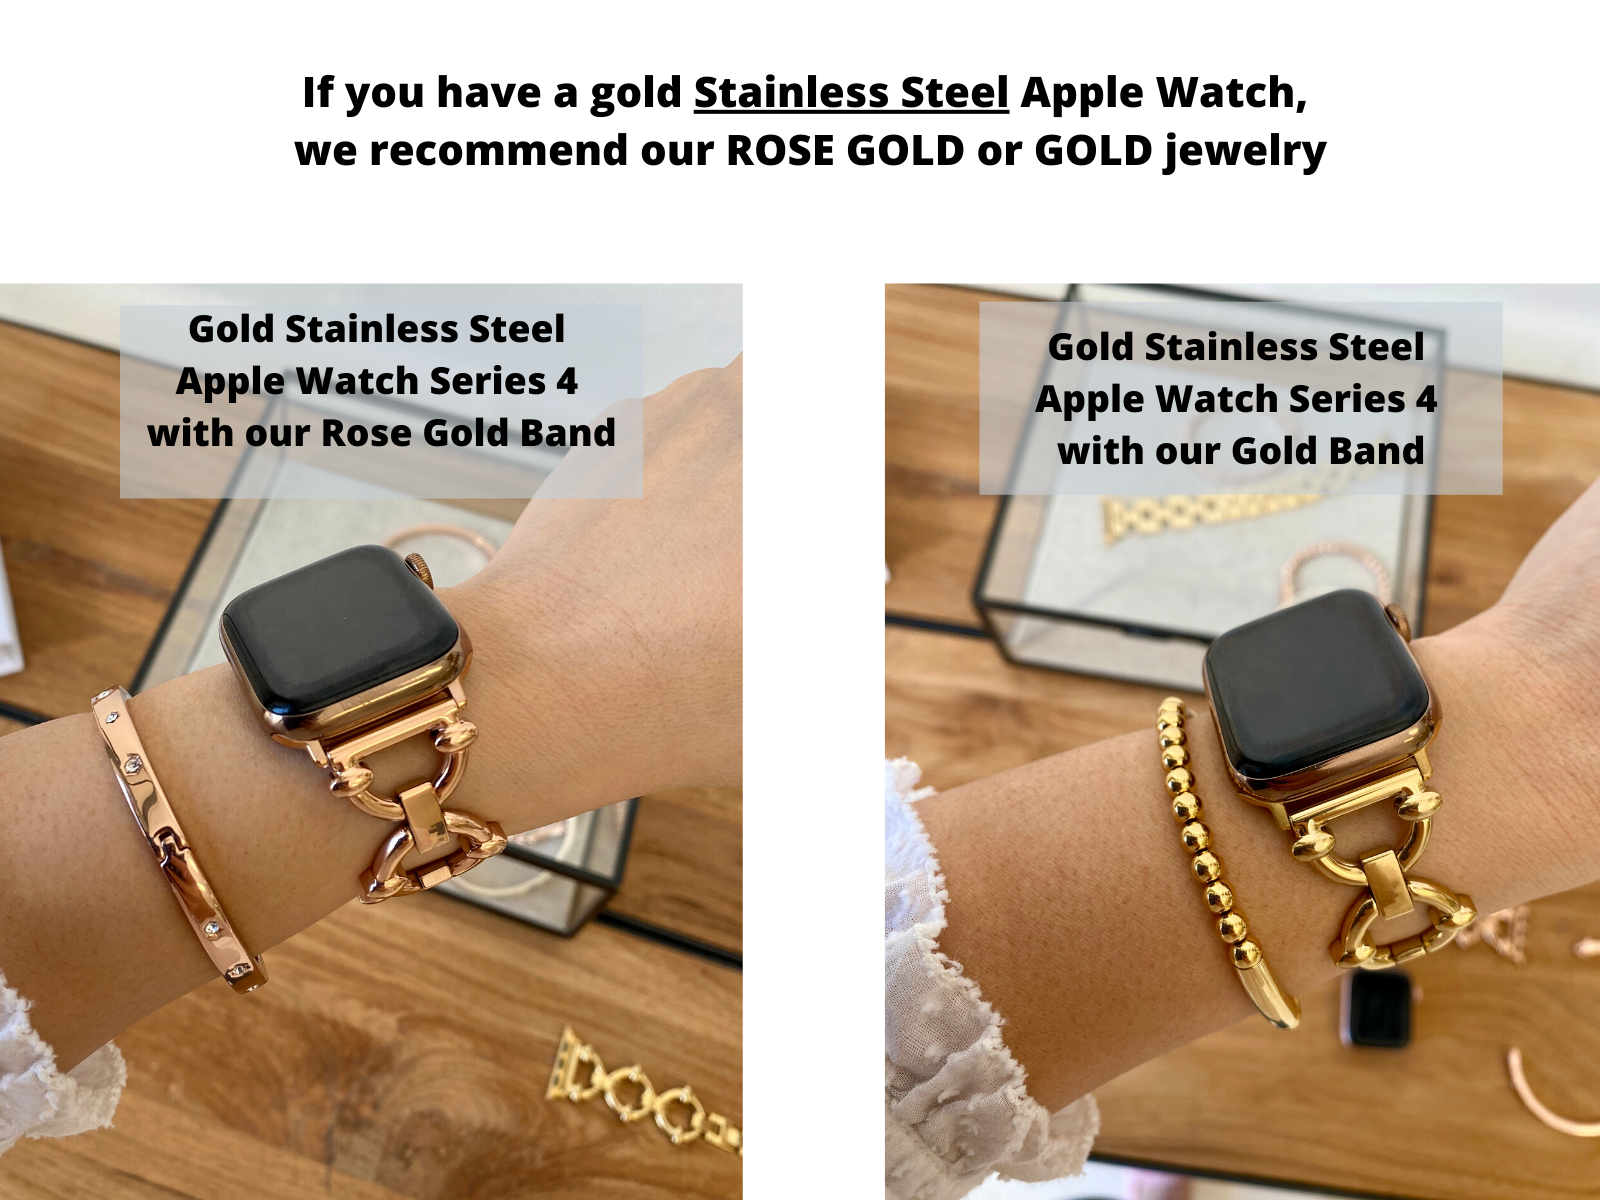 gold stainless steel apple watch gold or rose gold band